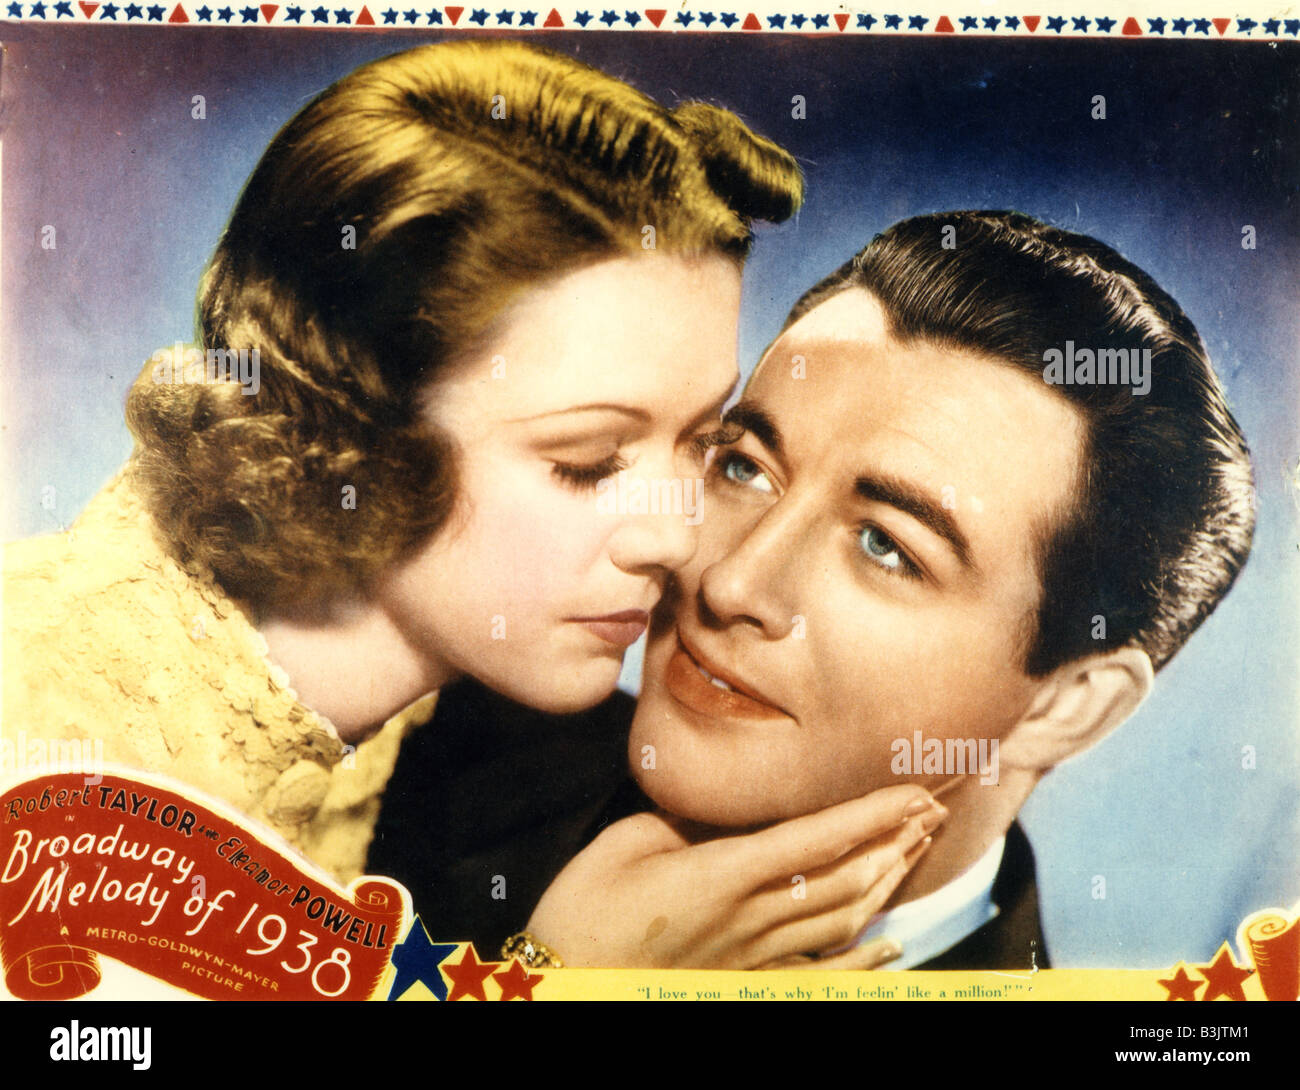 BROADWAY MELODY OF 1938  - 1937 film with Eleanor Powell and George Murphy - Stock Image